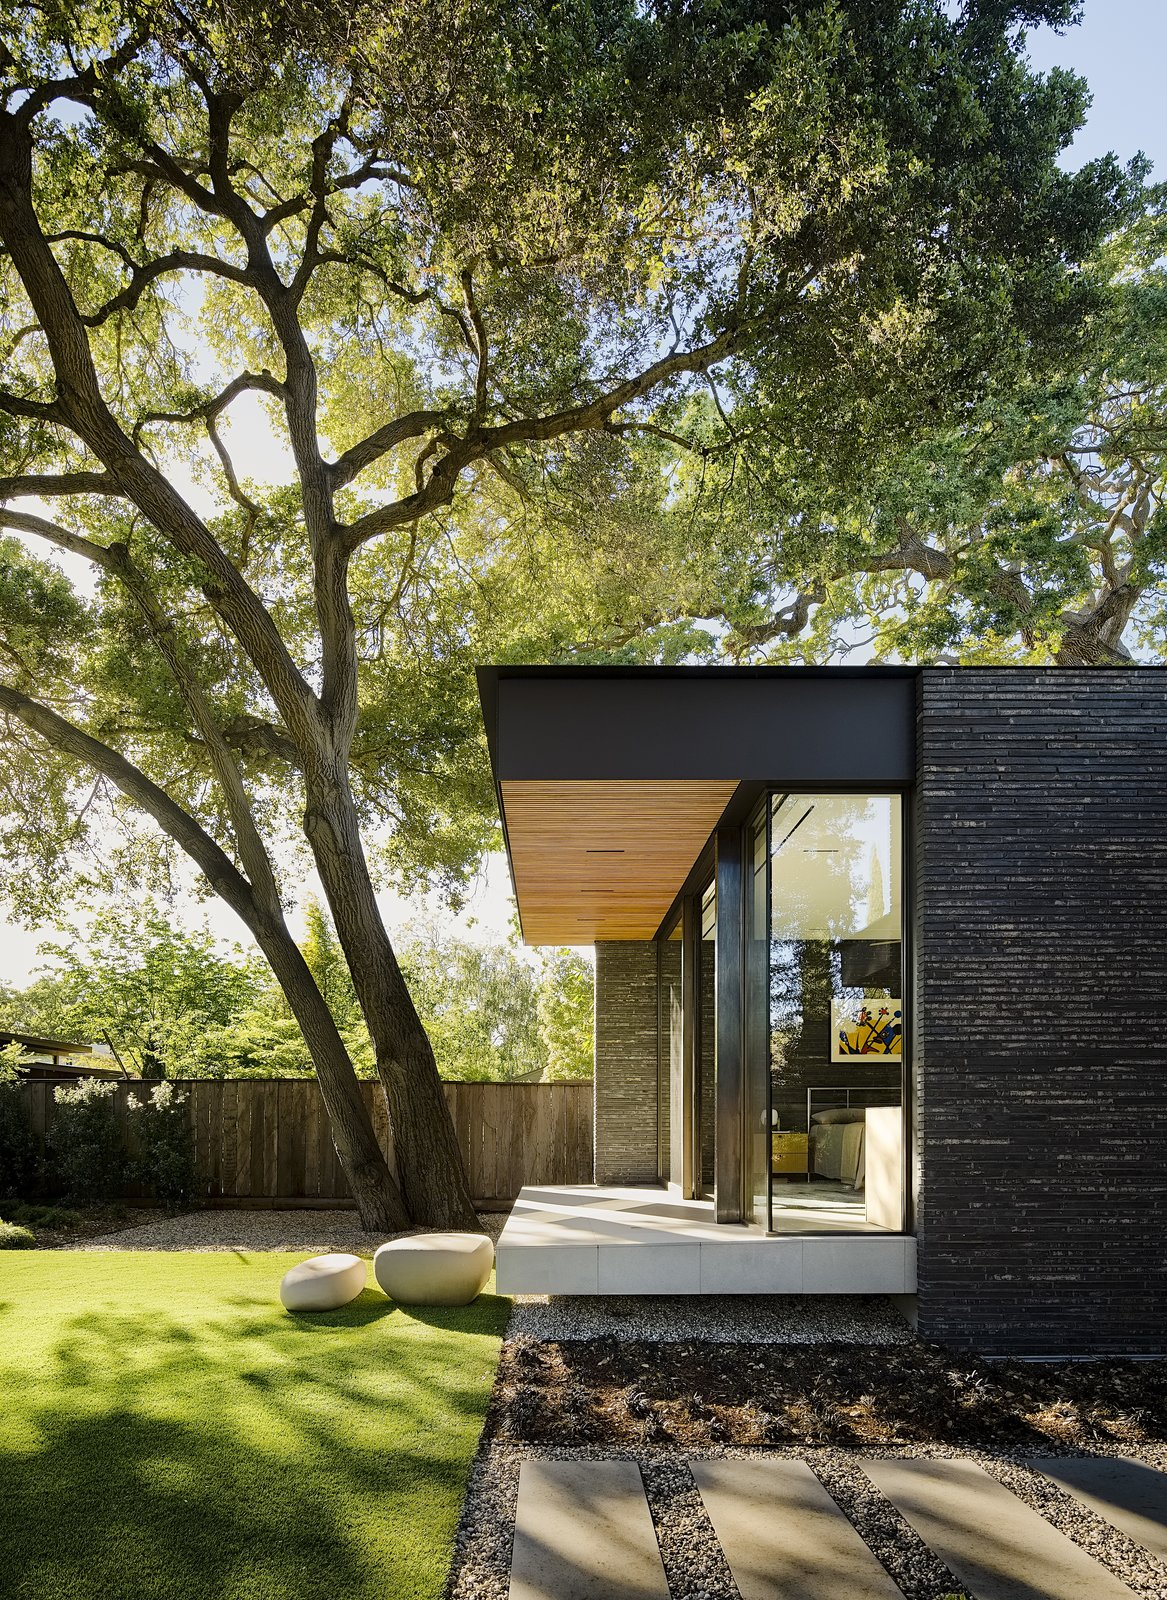 Outdoor, Trees, Side Yard, Back Yard, Boulders, Grass, Walkways, and Wood Fences, Wall The master bedroom was raised and cantilevered so as not to disturb the mature oak tree roots. Boulders are used as steps to the lawn.  Photos from A Modernist Dream Home Makes the Most of a Rare Double Lot in Palo Alto